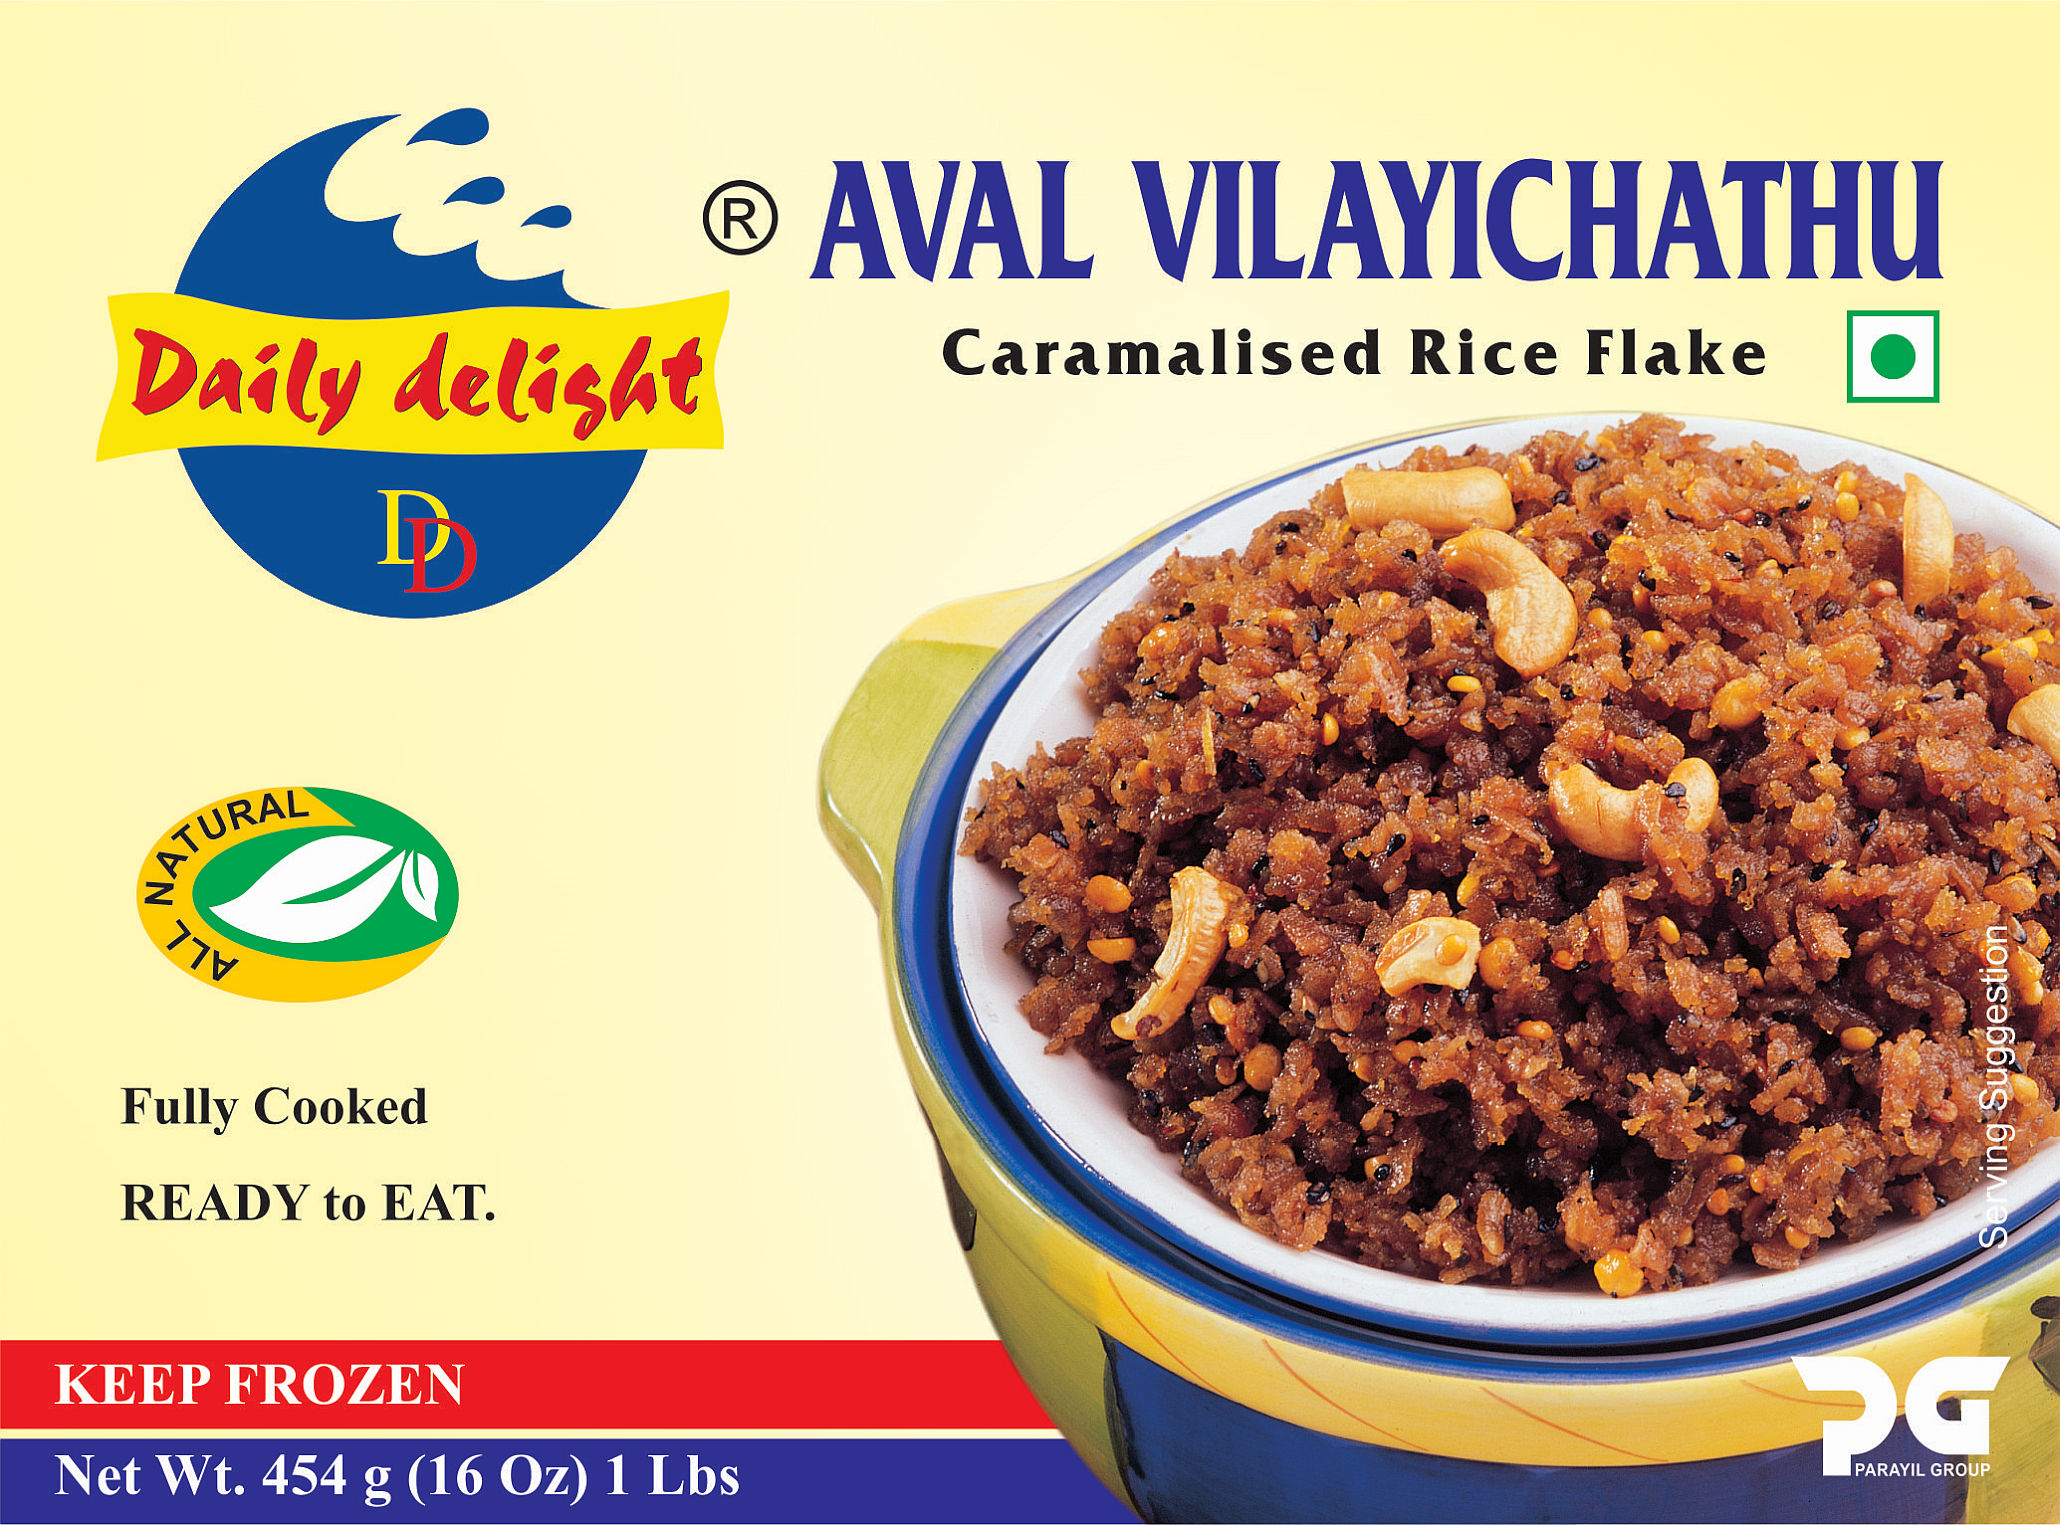 Daily Delight Aval Vilayichathu